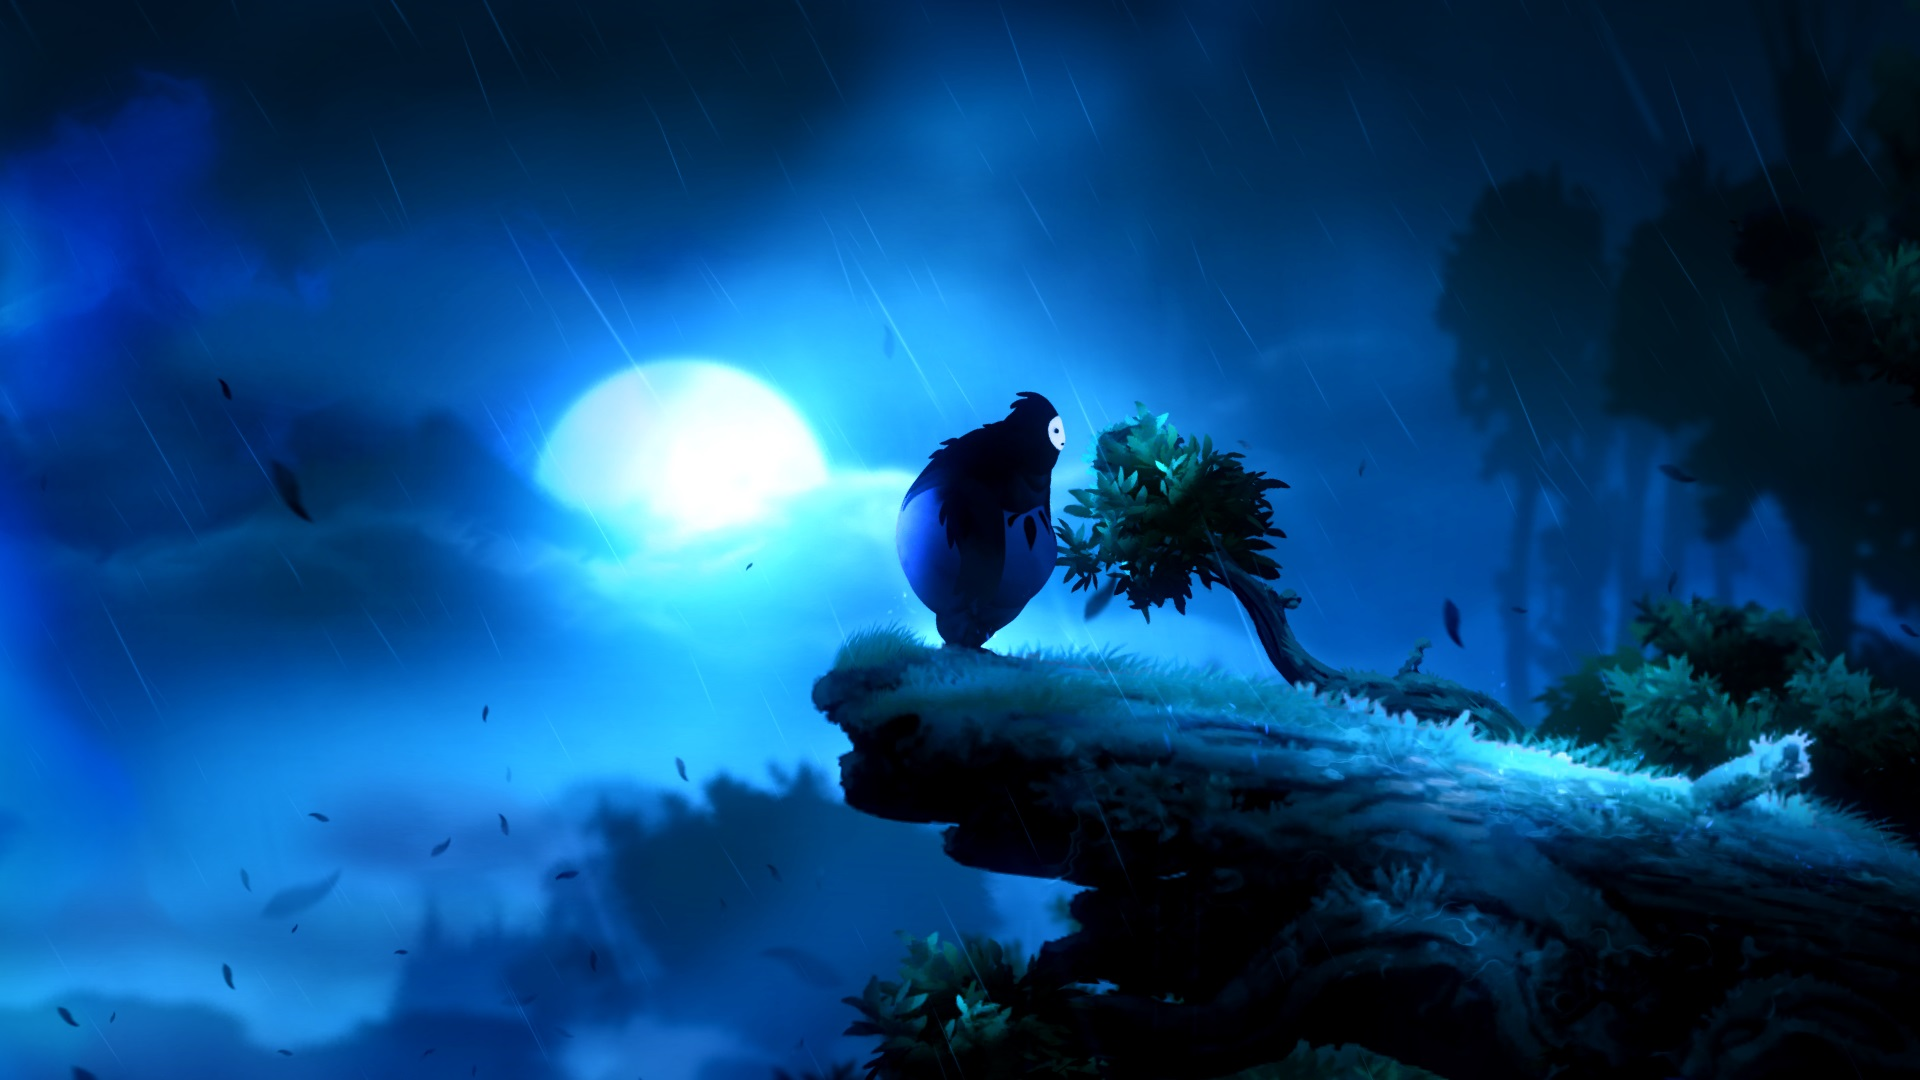 Ori and the Blind Forest DE (The Late Review) – The Late